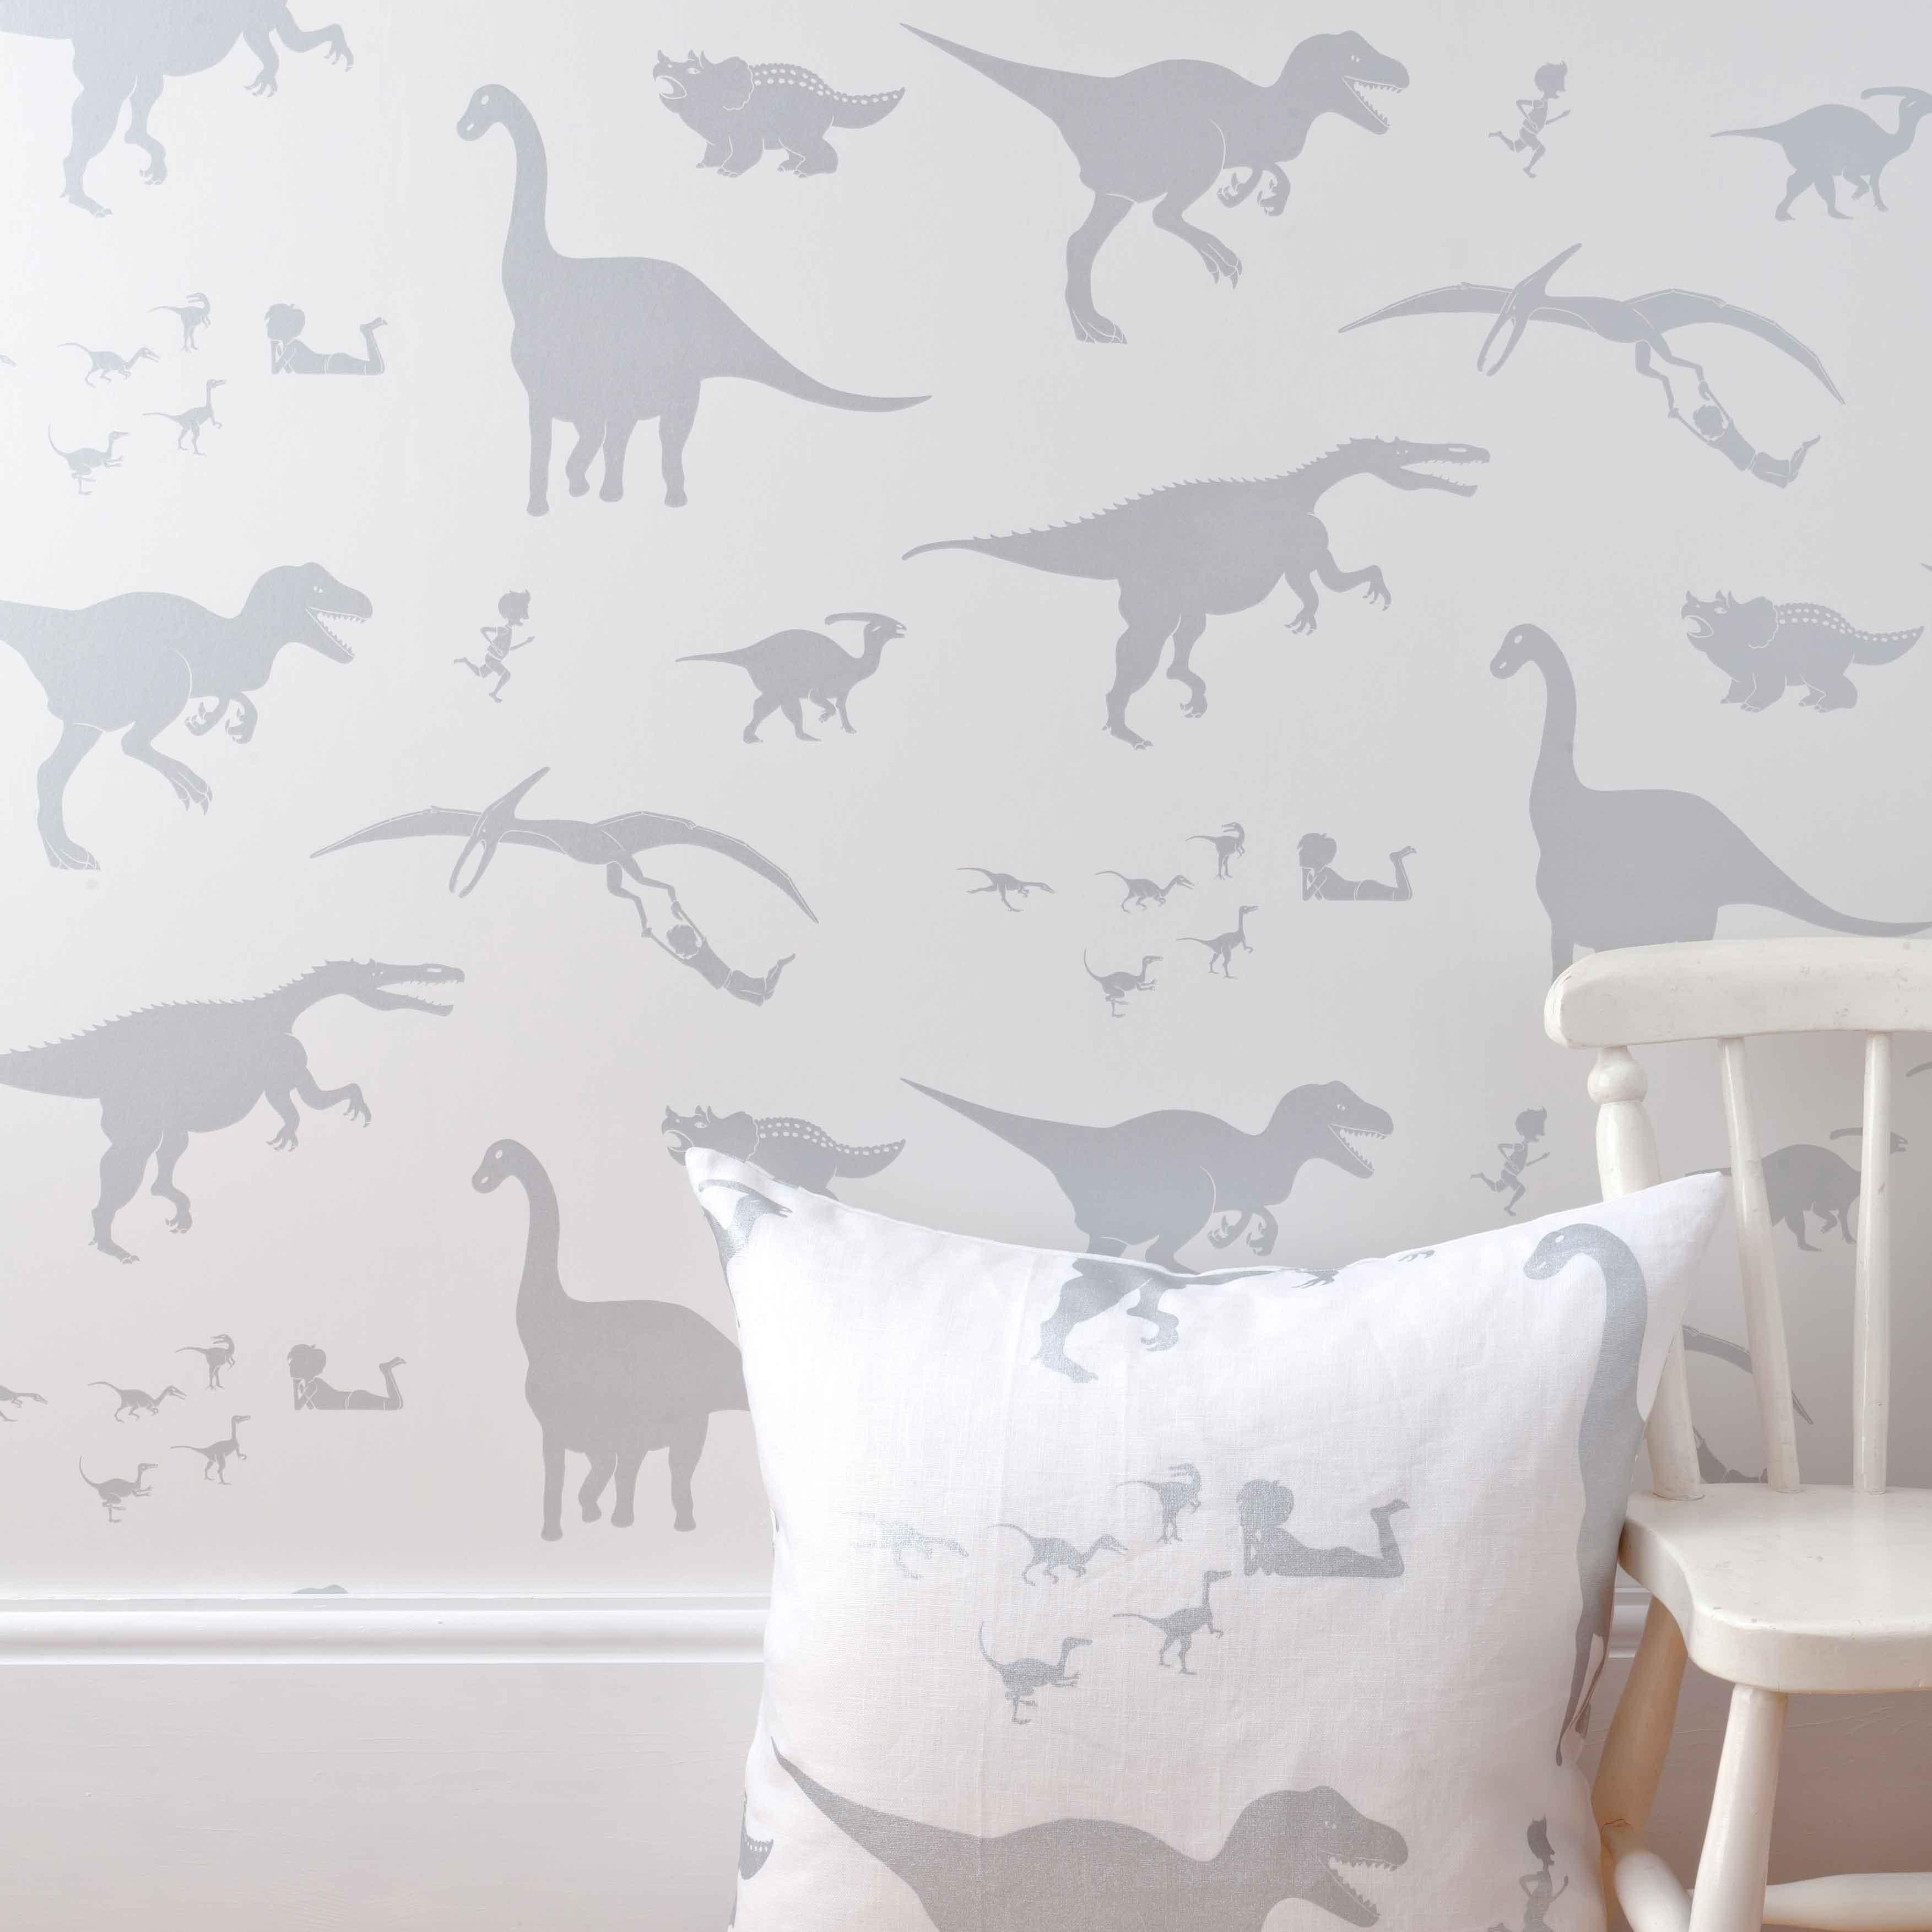 To decorate d 39 ya think e saurus boys dinosaur wallpaper paper boy wallpapers for the - Paperboy dinosaur wallpaper ...